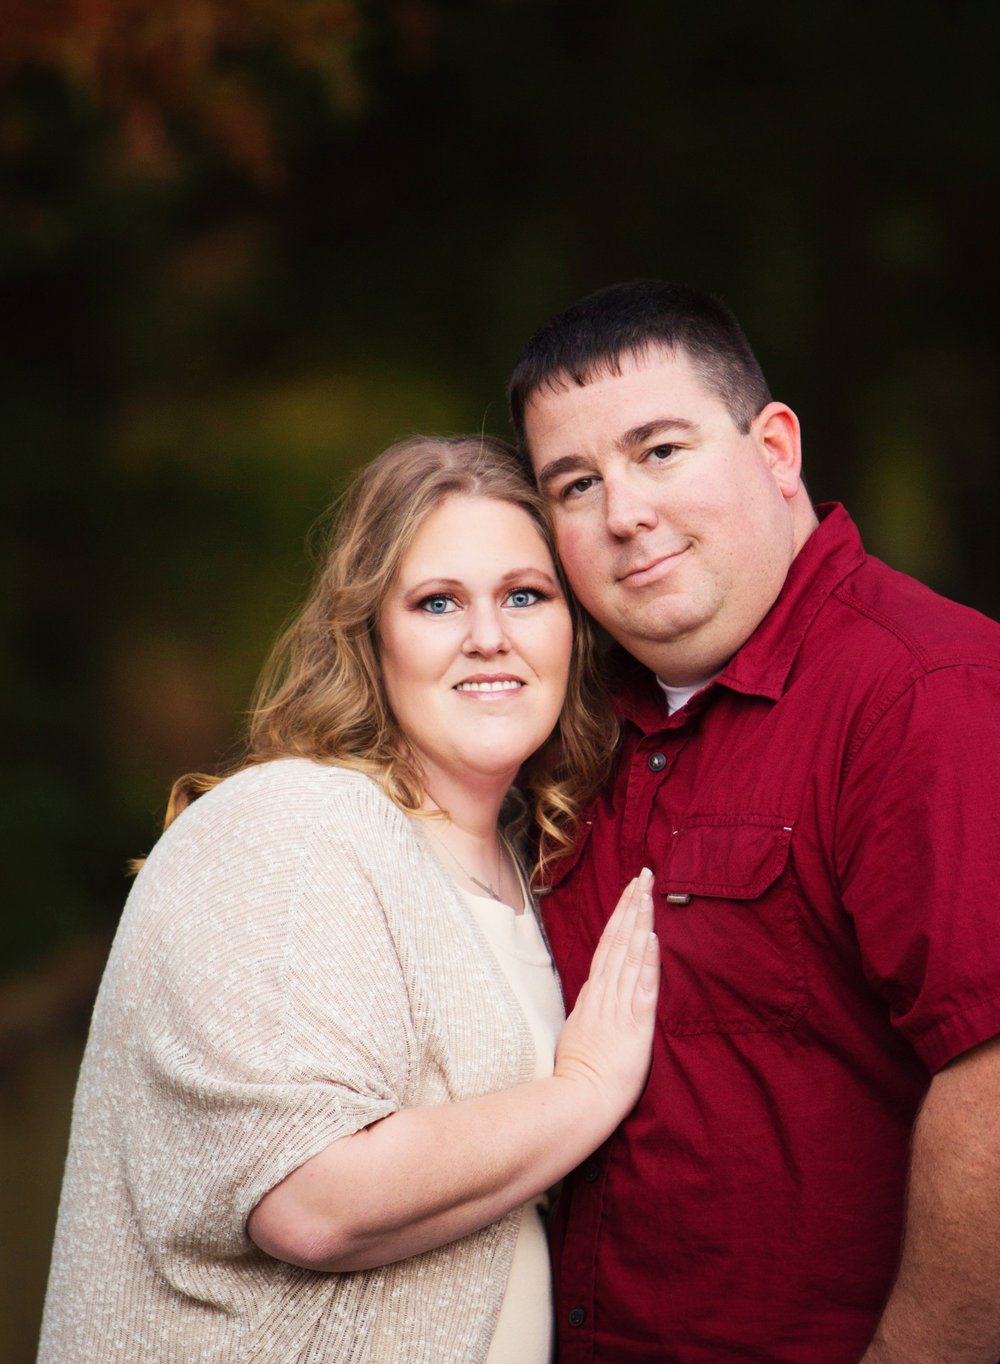 Engagement Photography in Shreveport